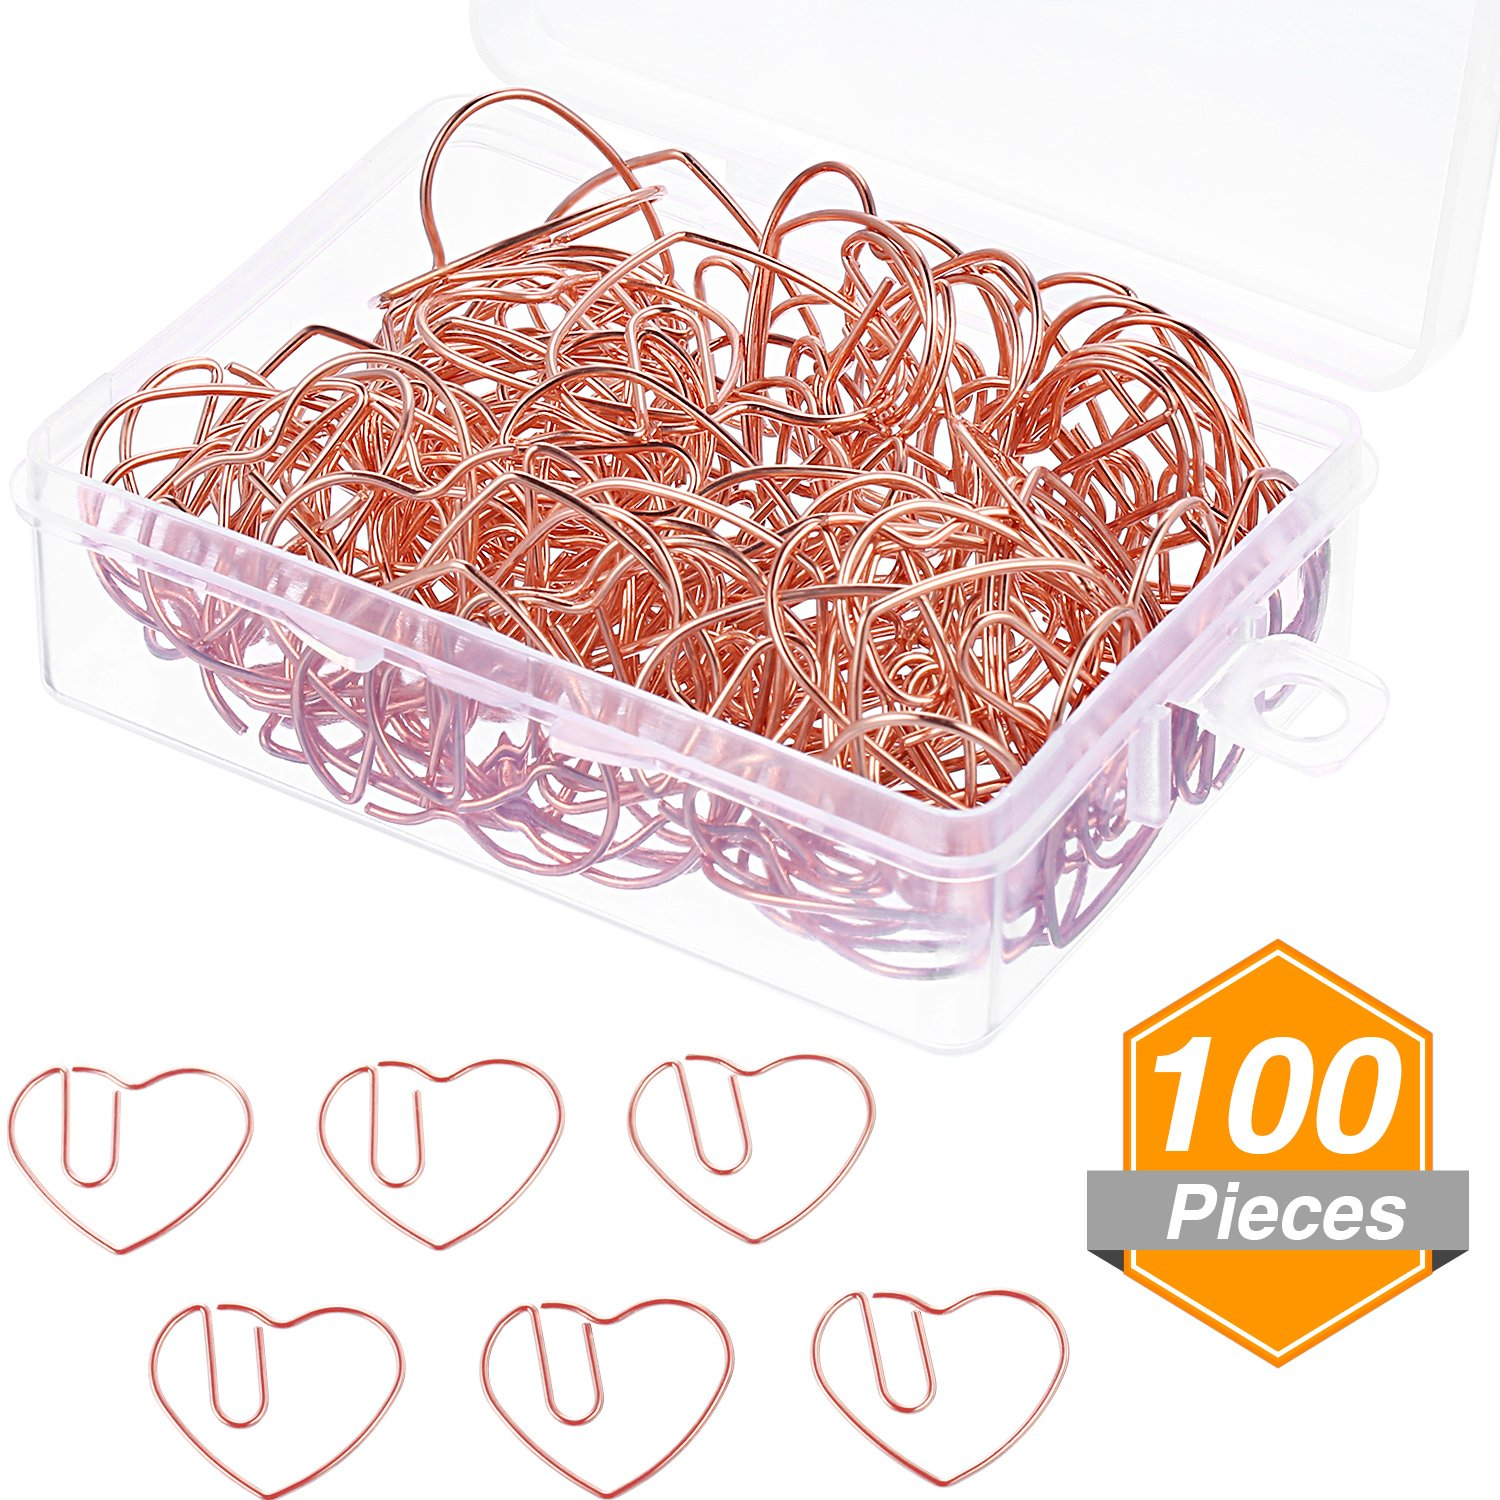 Jetec 100 Pieces 3 cm Love Heart Shaped Paper Clips Bookmark Clips for Office School Home, Rose Gold